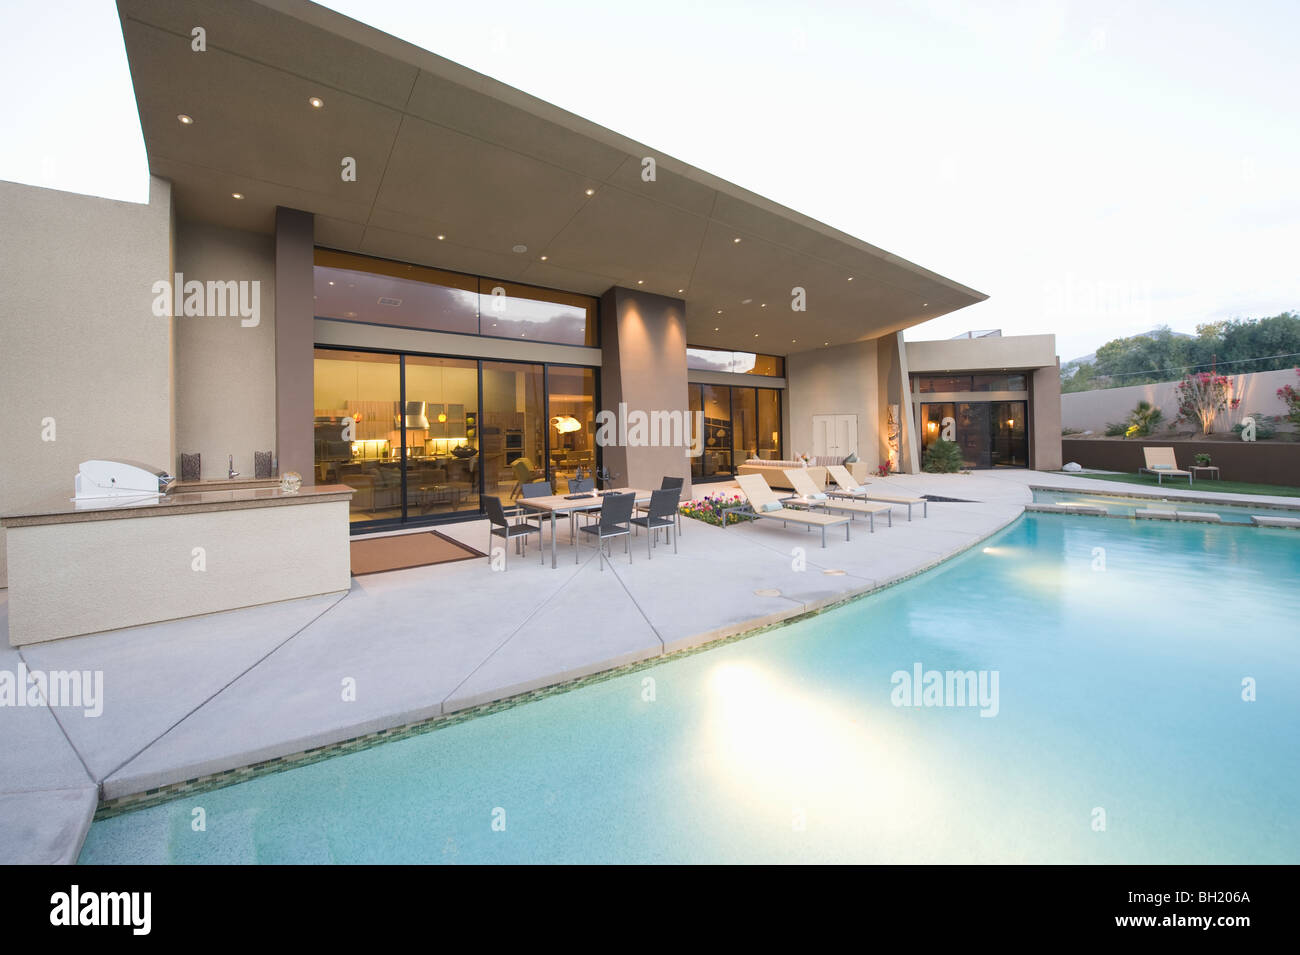 Swimming pool and paved seating area of Palm Springs home exterior - Stock Image